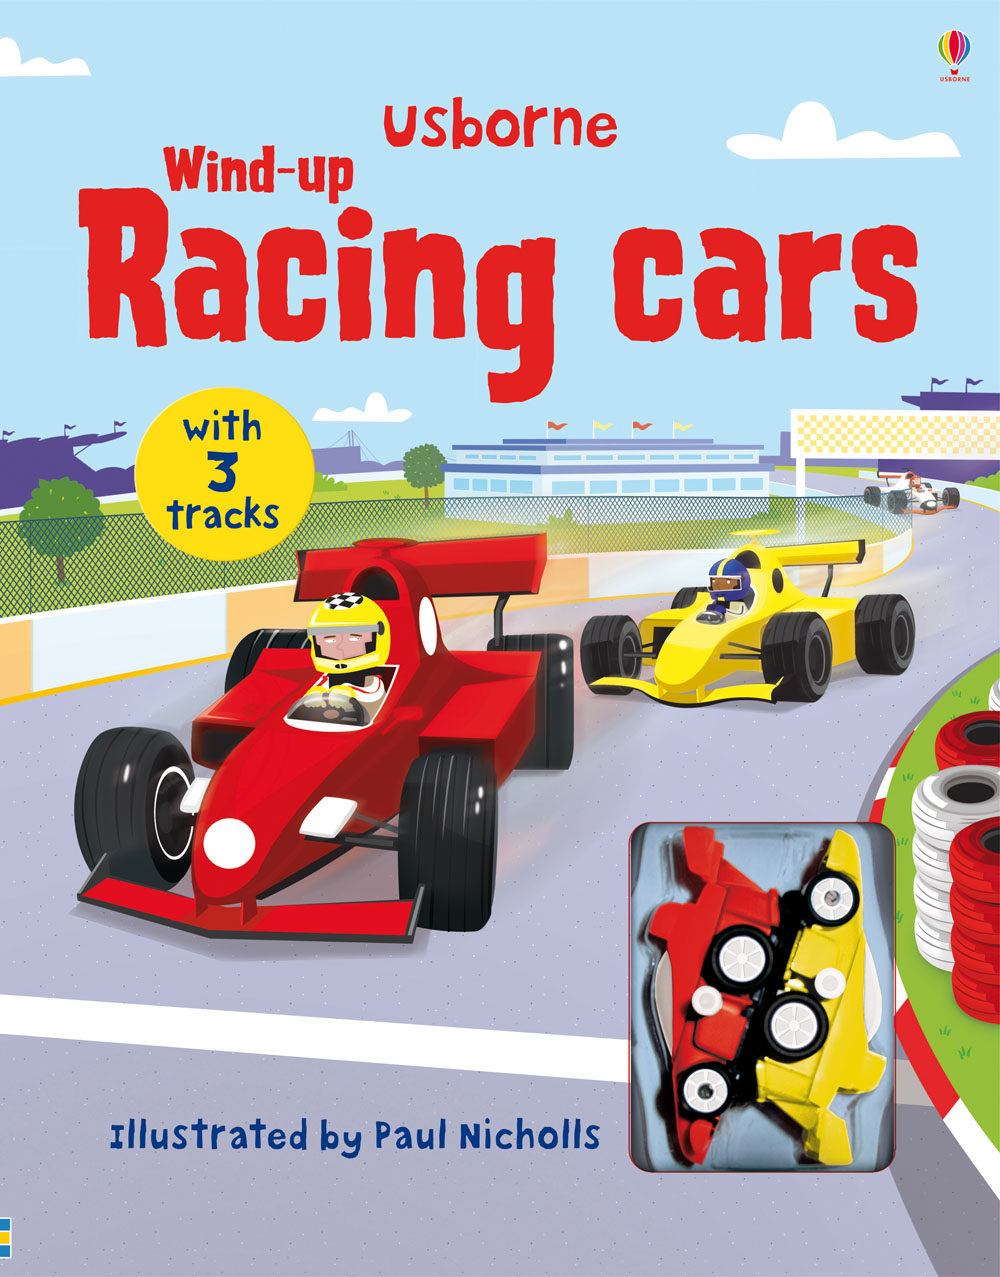 """Wind-up racing cars"" at Usborne Children's Books"